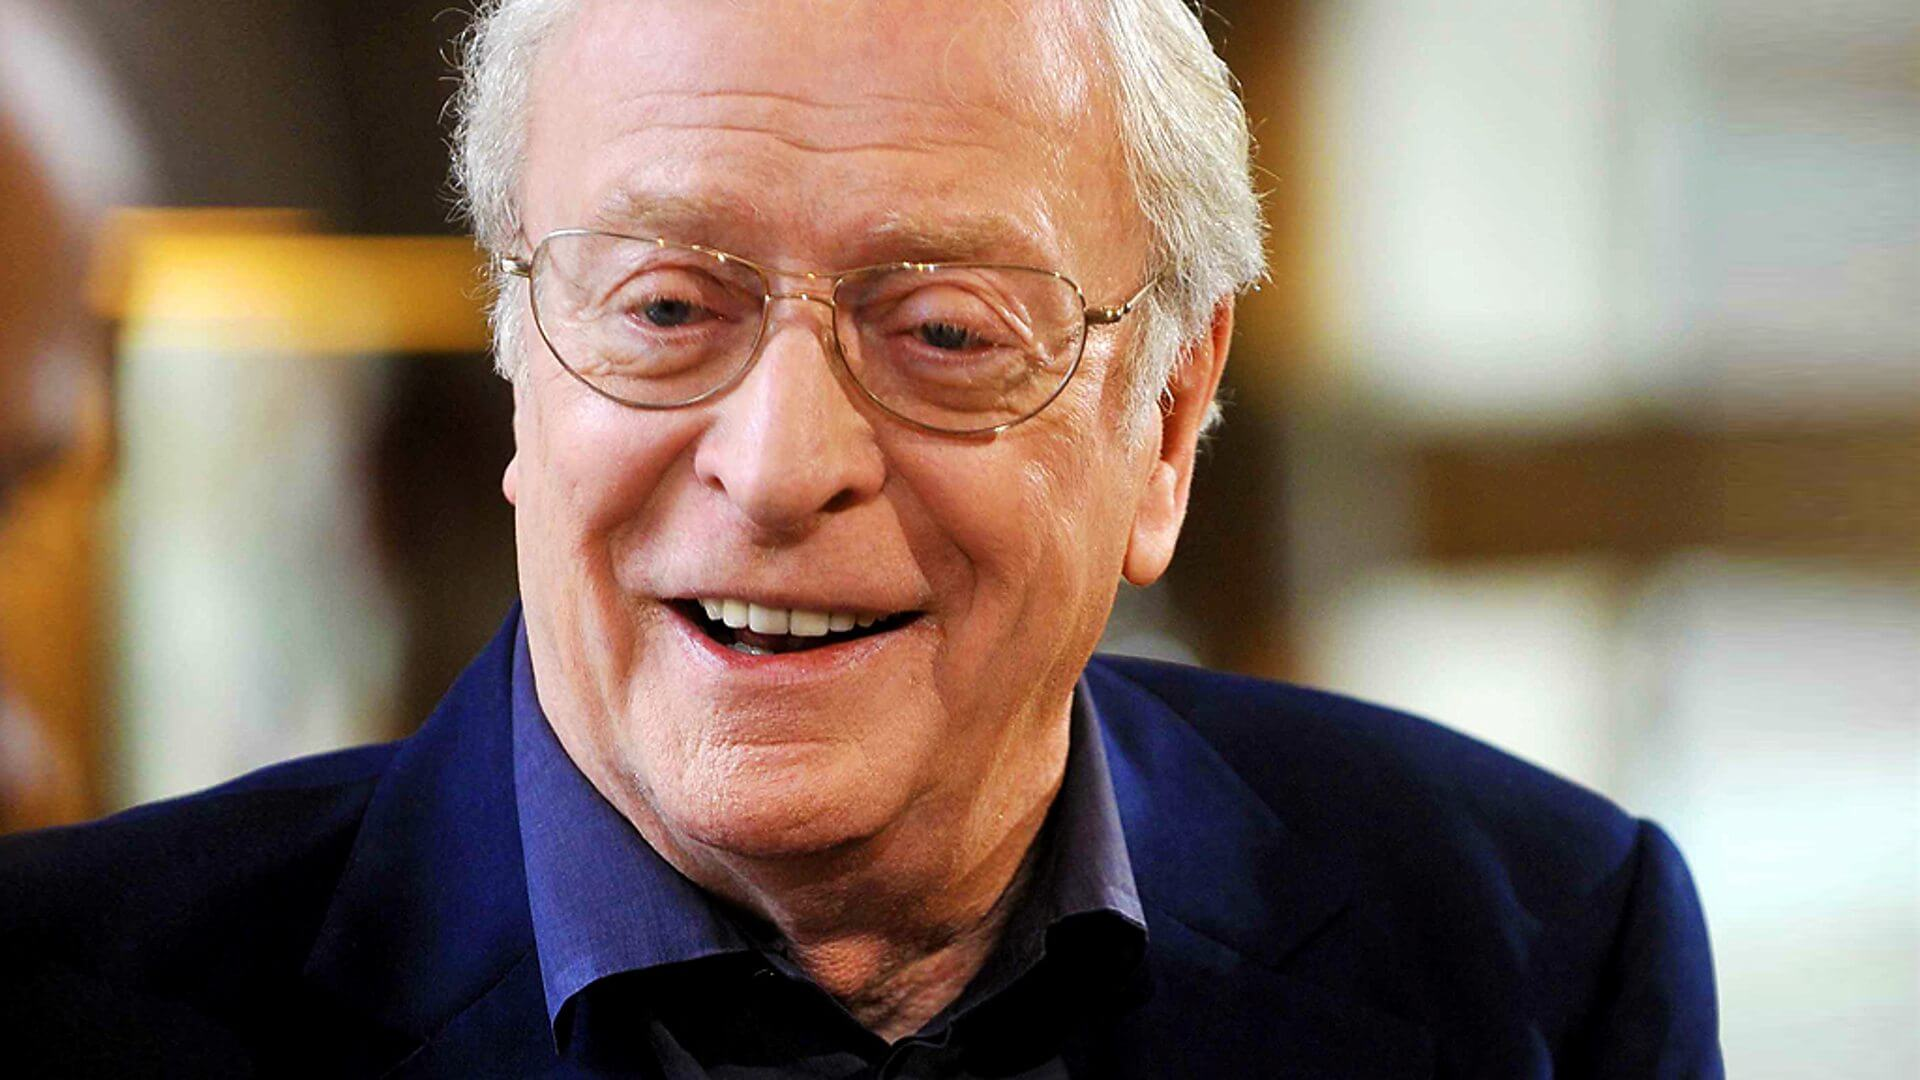 Sir Michael Caine Speaks About Oscar Controversy